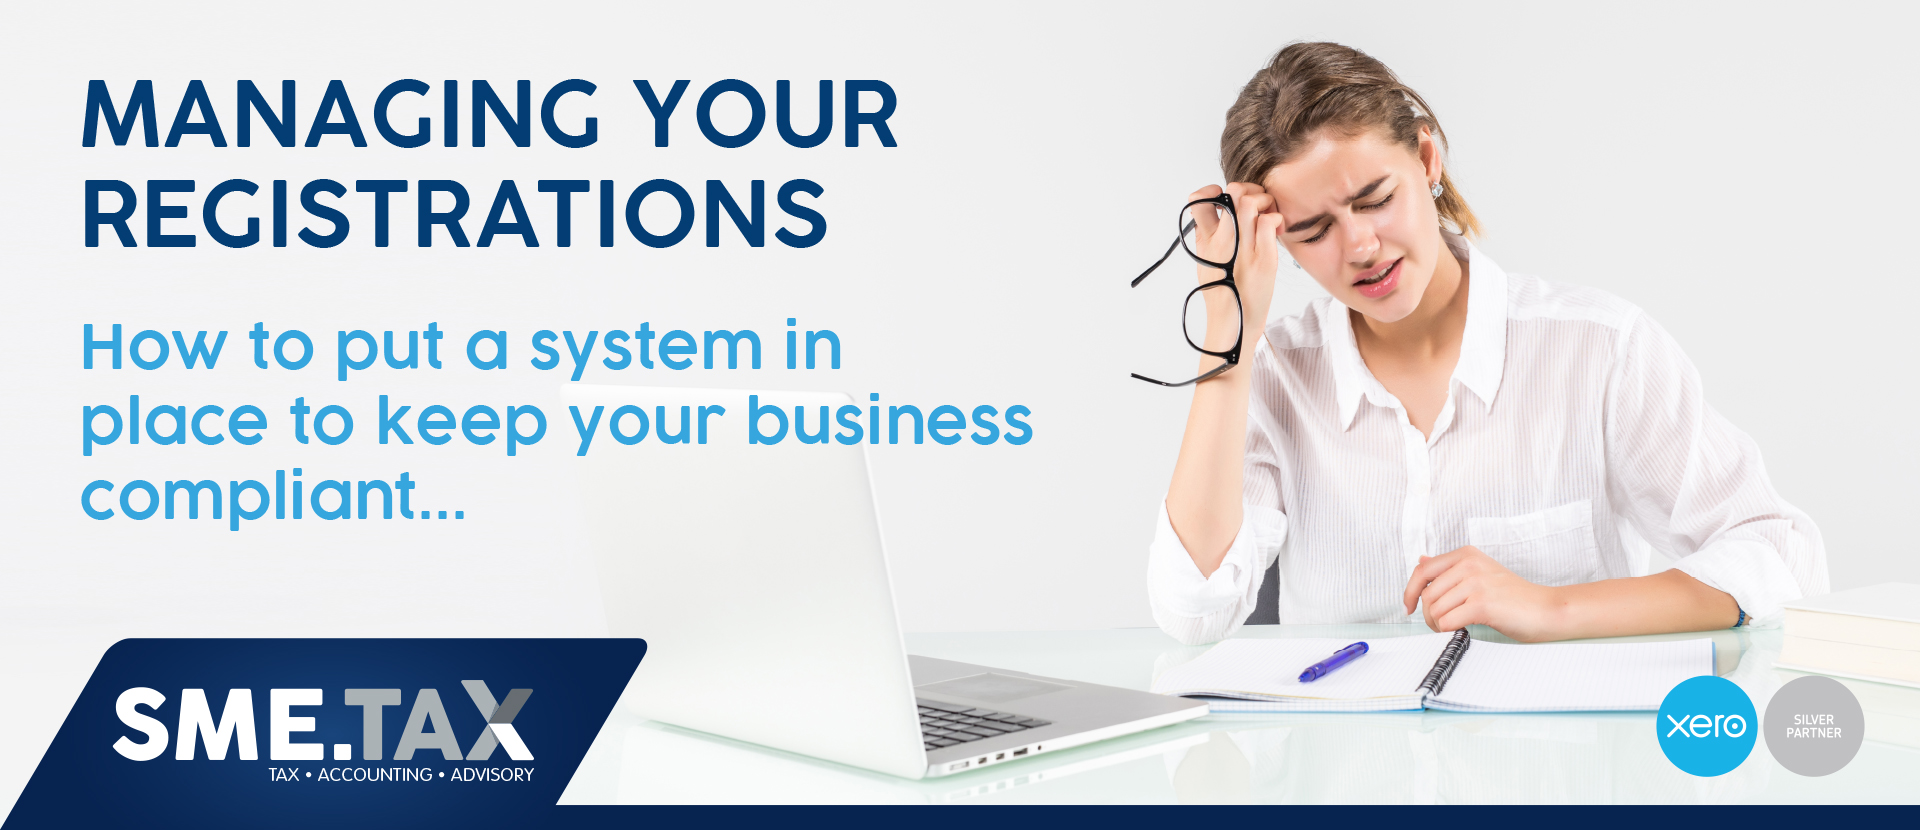 MANAGING YOUR REGISTRATIONS - How to put a system in place to keep your business compliant 1